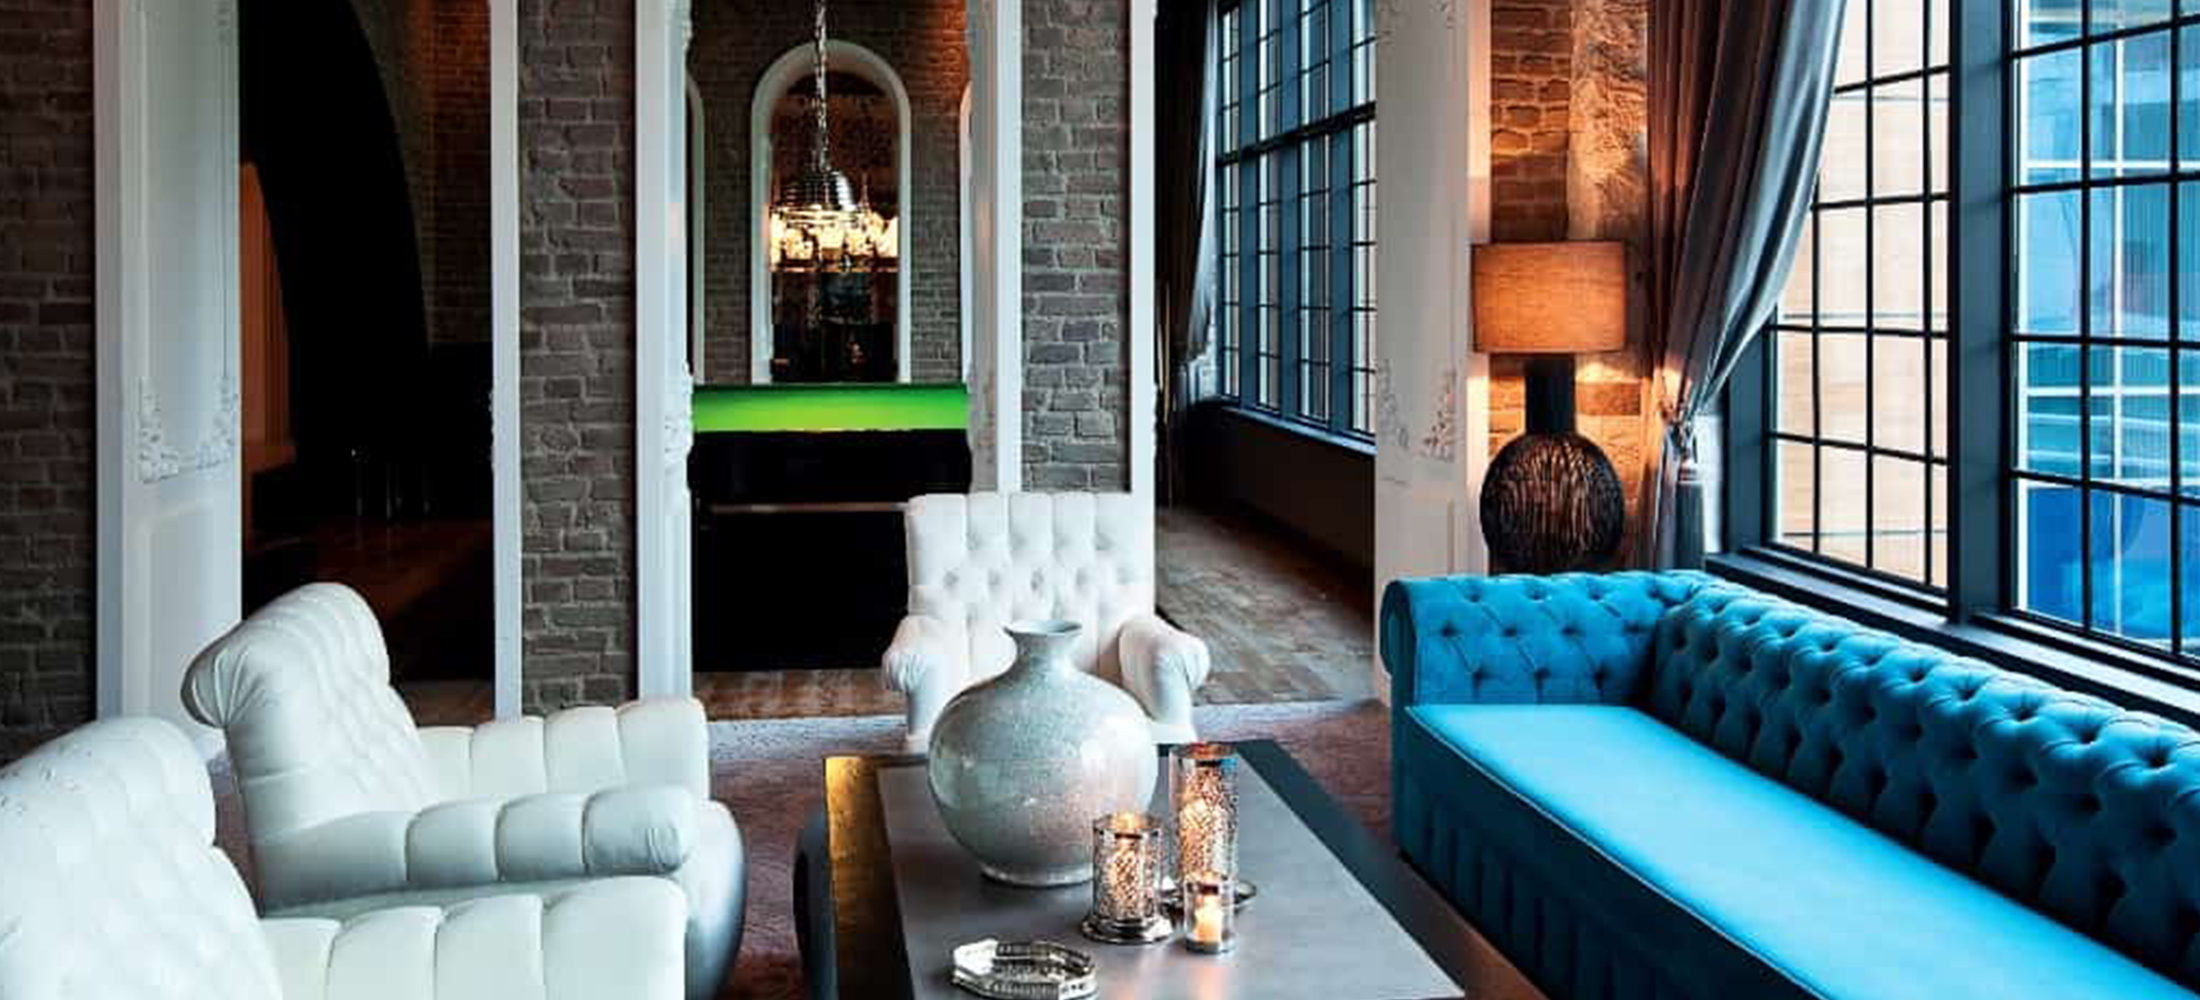 communal spaces become commonplace in hotels